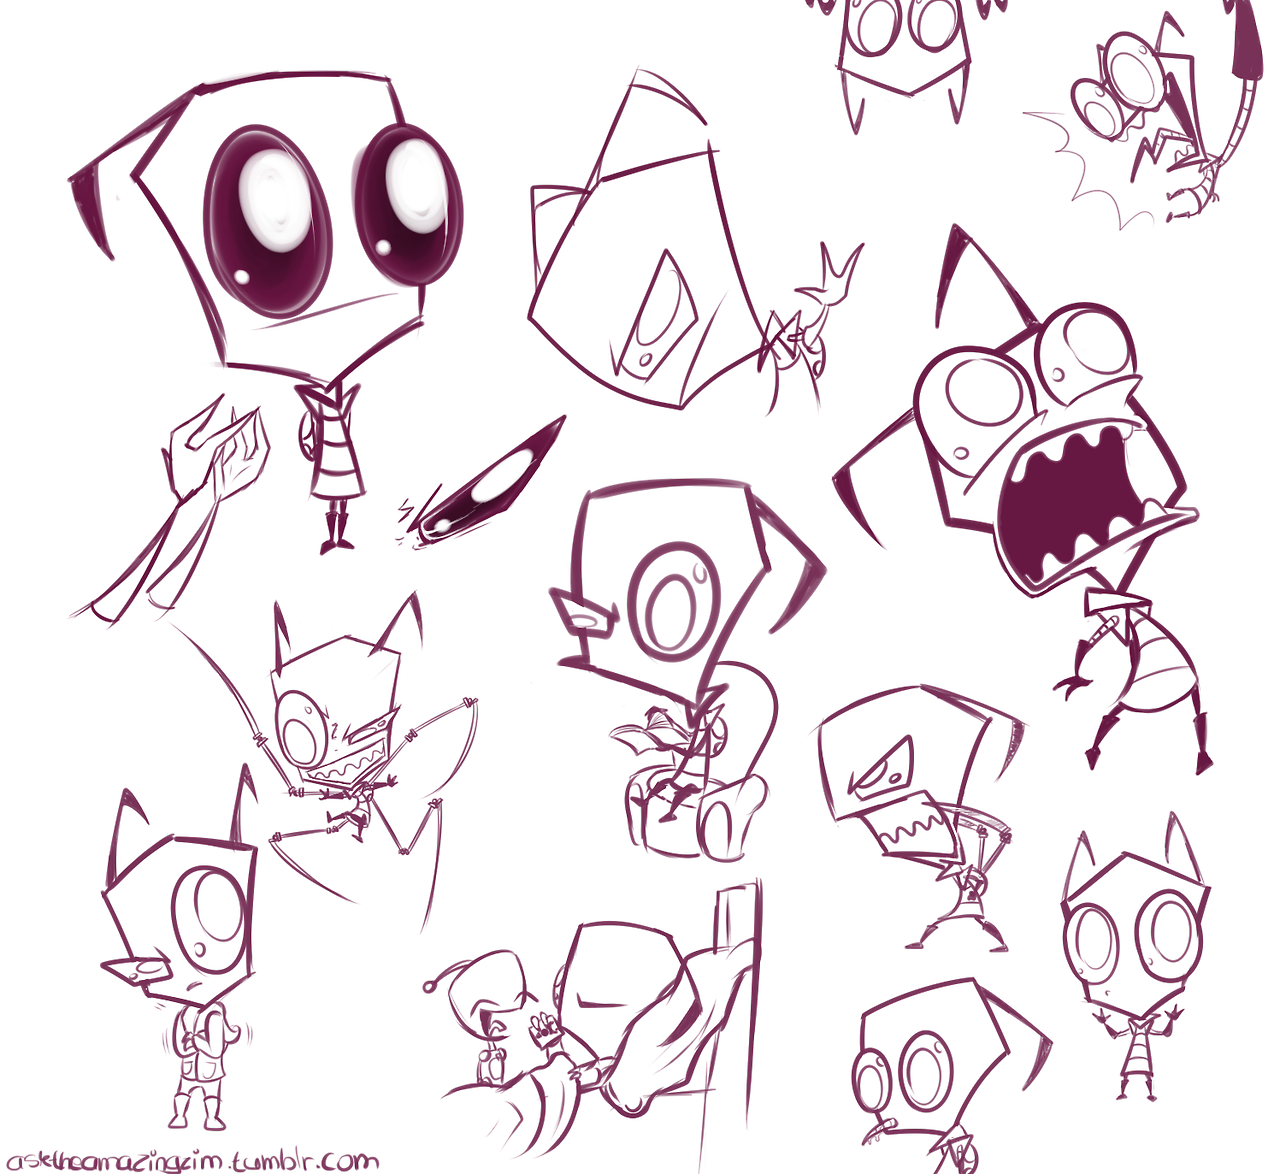 invader zim character by - photo #10